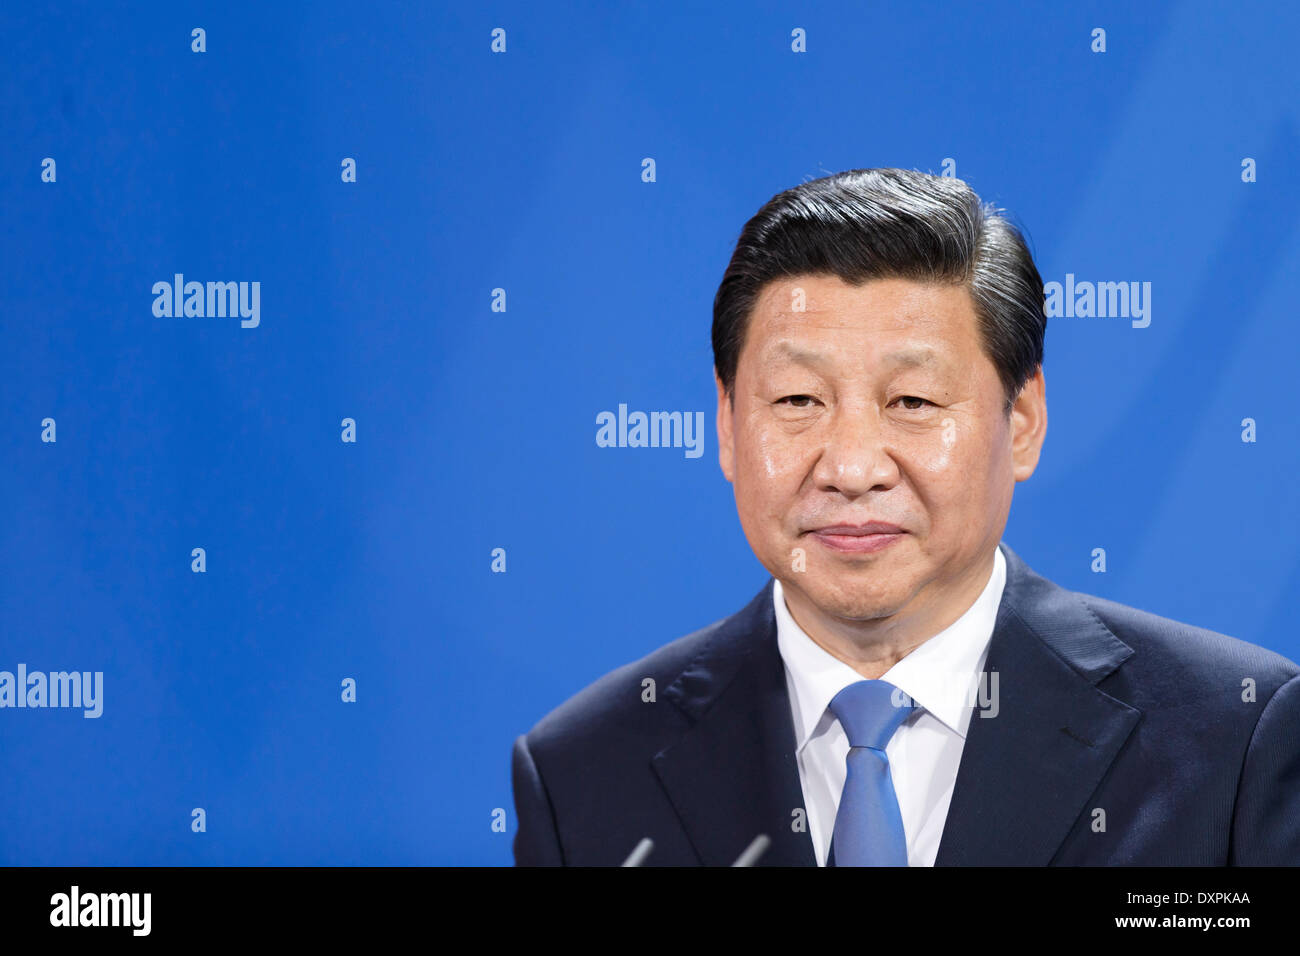 Berlin, Germany. March, 28th, 2014. Common press meeting of Chinese president Xi Jinping by German Chancellor Angela Merkel in the chancellor's office in Berlin. / Picture: Xi Jinping,  president of China. Credit:  Reynaldo Chaib Paganelli/Alamy Live News - Stock Image